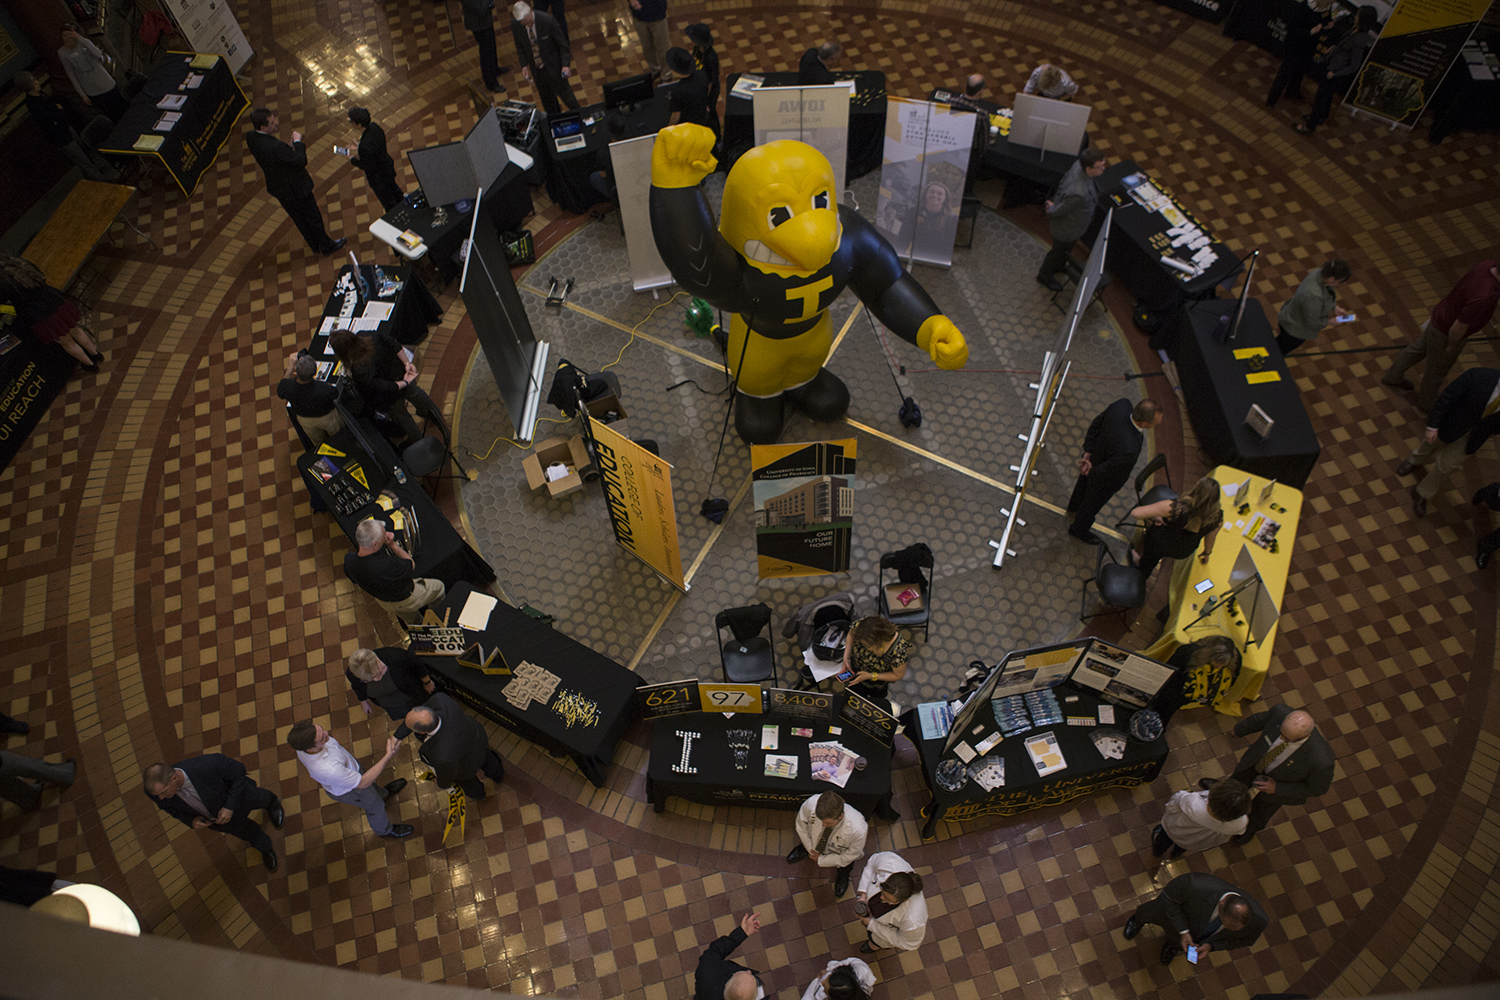 An inflatable Herky sits on the ground floor of the state Capitol during Hawkeye Caucus in Des Moines on April 9, 2019. The Hawkeye Caucus provides members of the UI community to come speak with Iowa legislators.